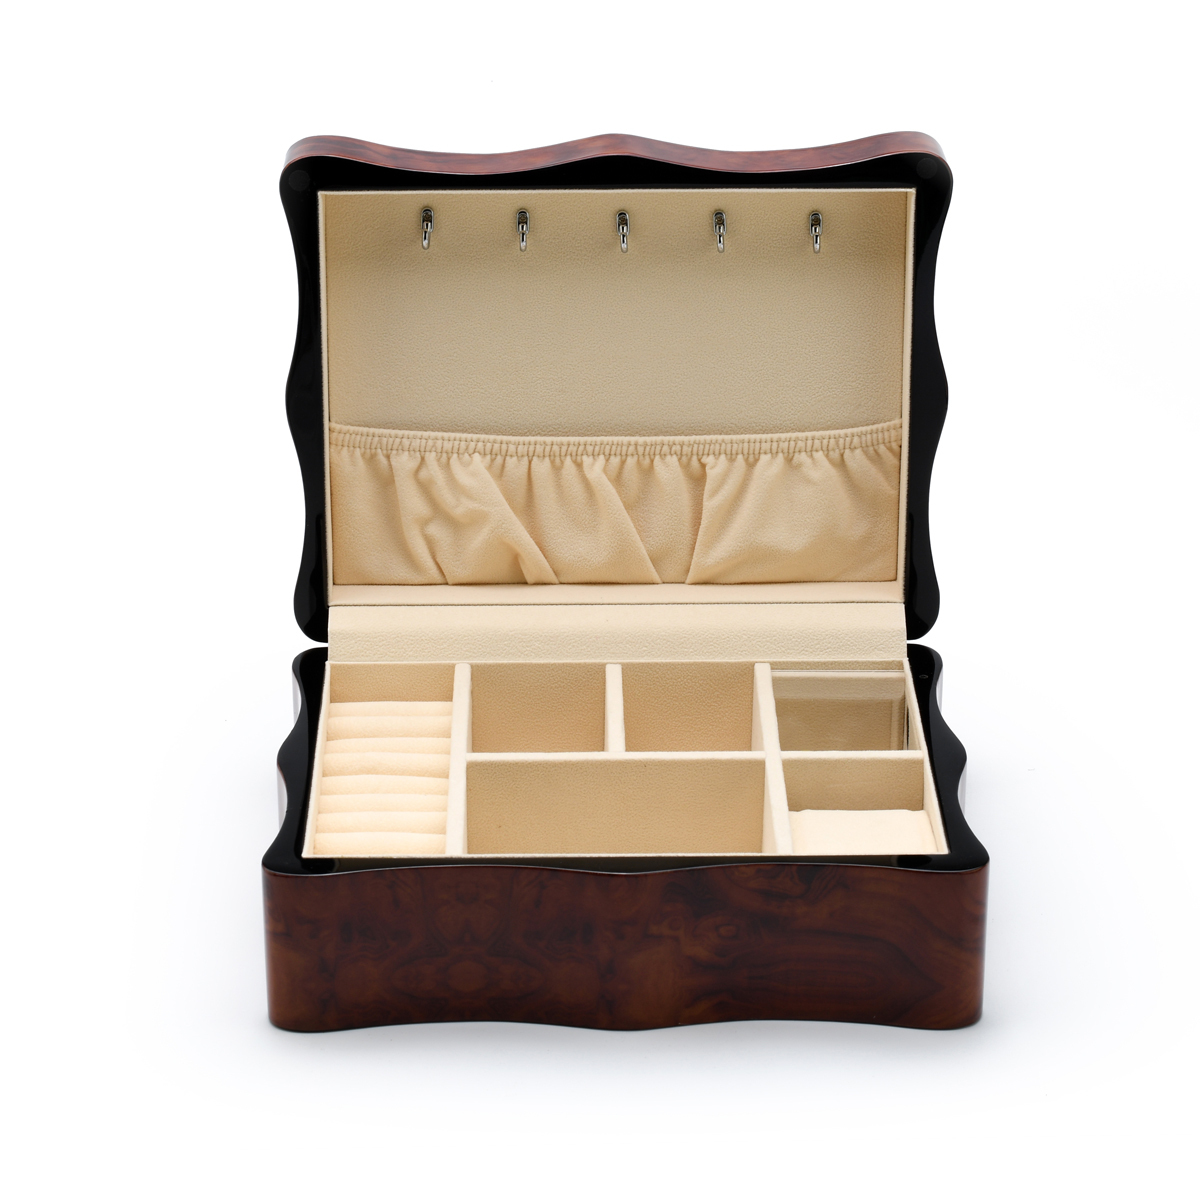 Gorgeous 18 Note Wood Stain Scalloped Shape Musical Jewelry Box